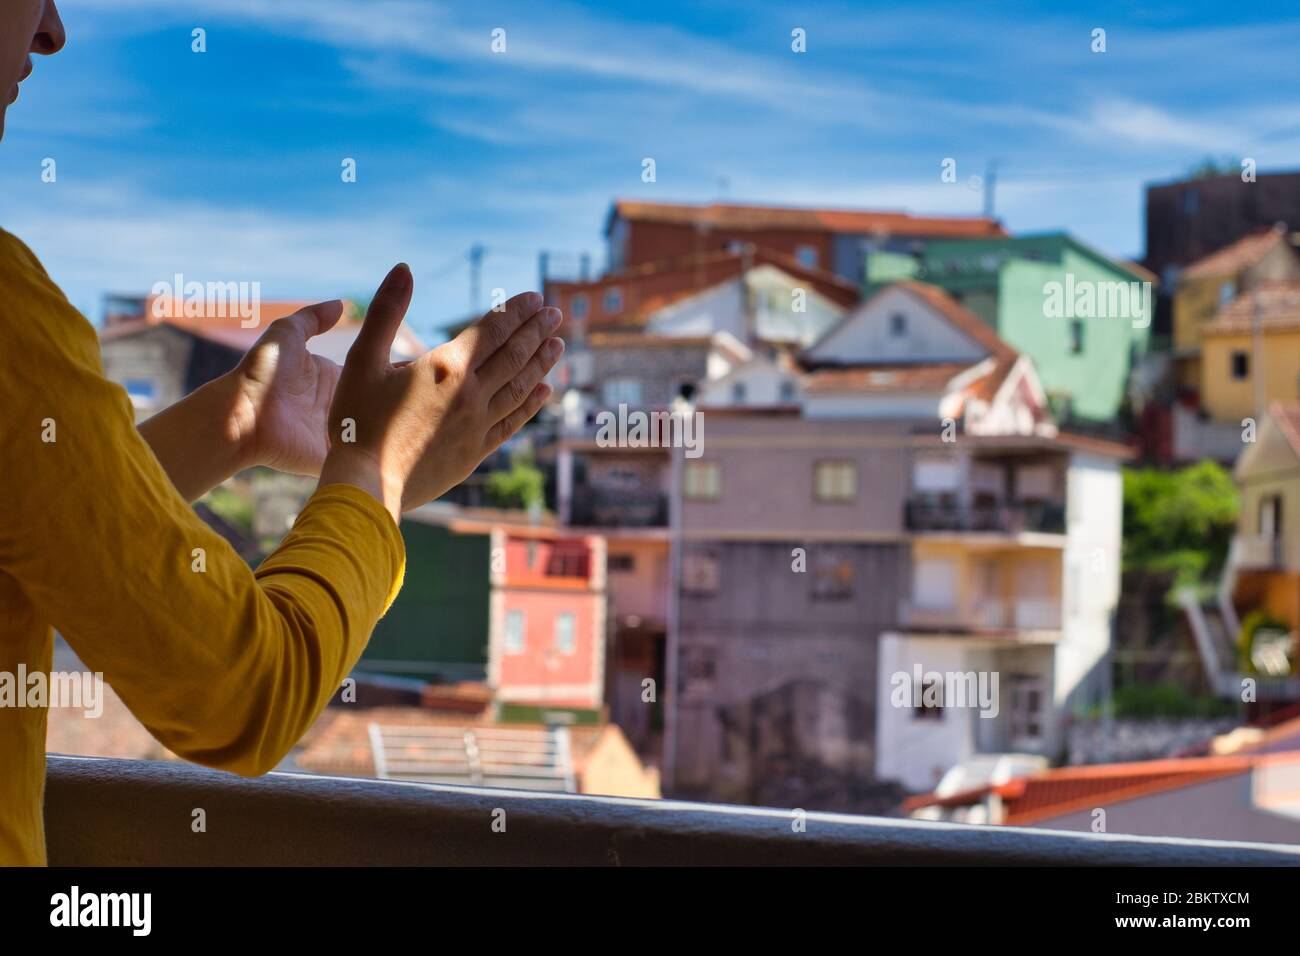 Young woman clapping her hands on the balcony to showi gratitude to all healthcare workers during the coronavirus outbreak. Lots of colorful houses. Stock Photo